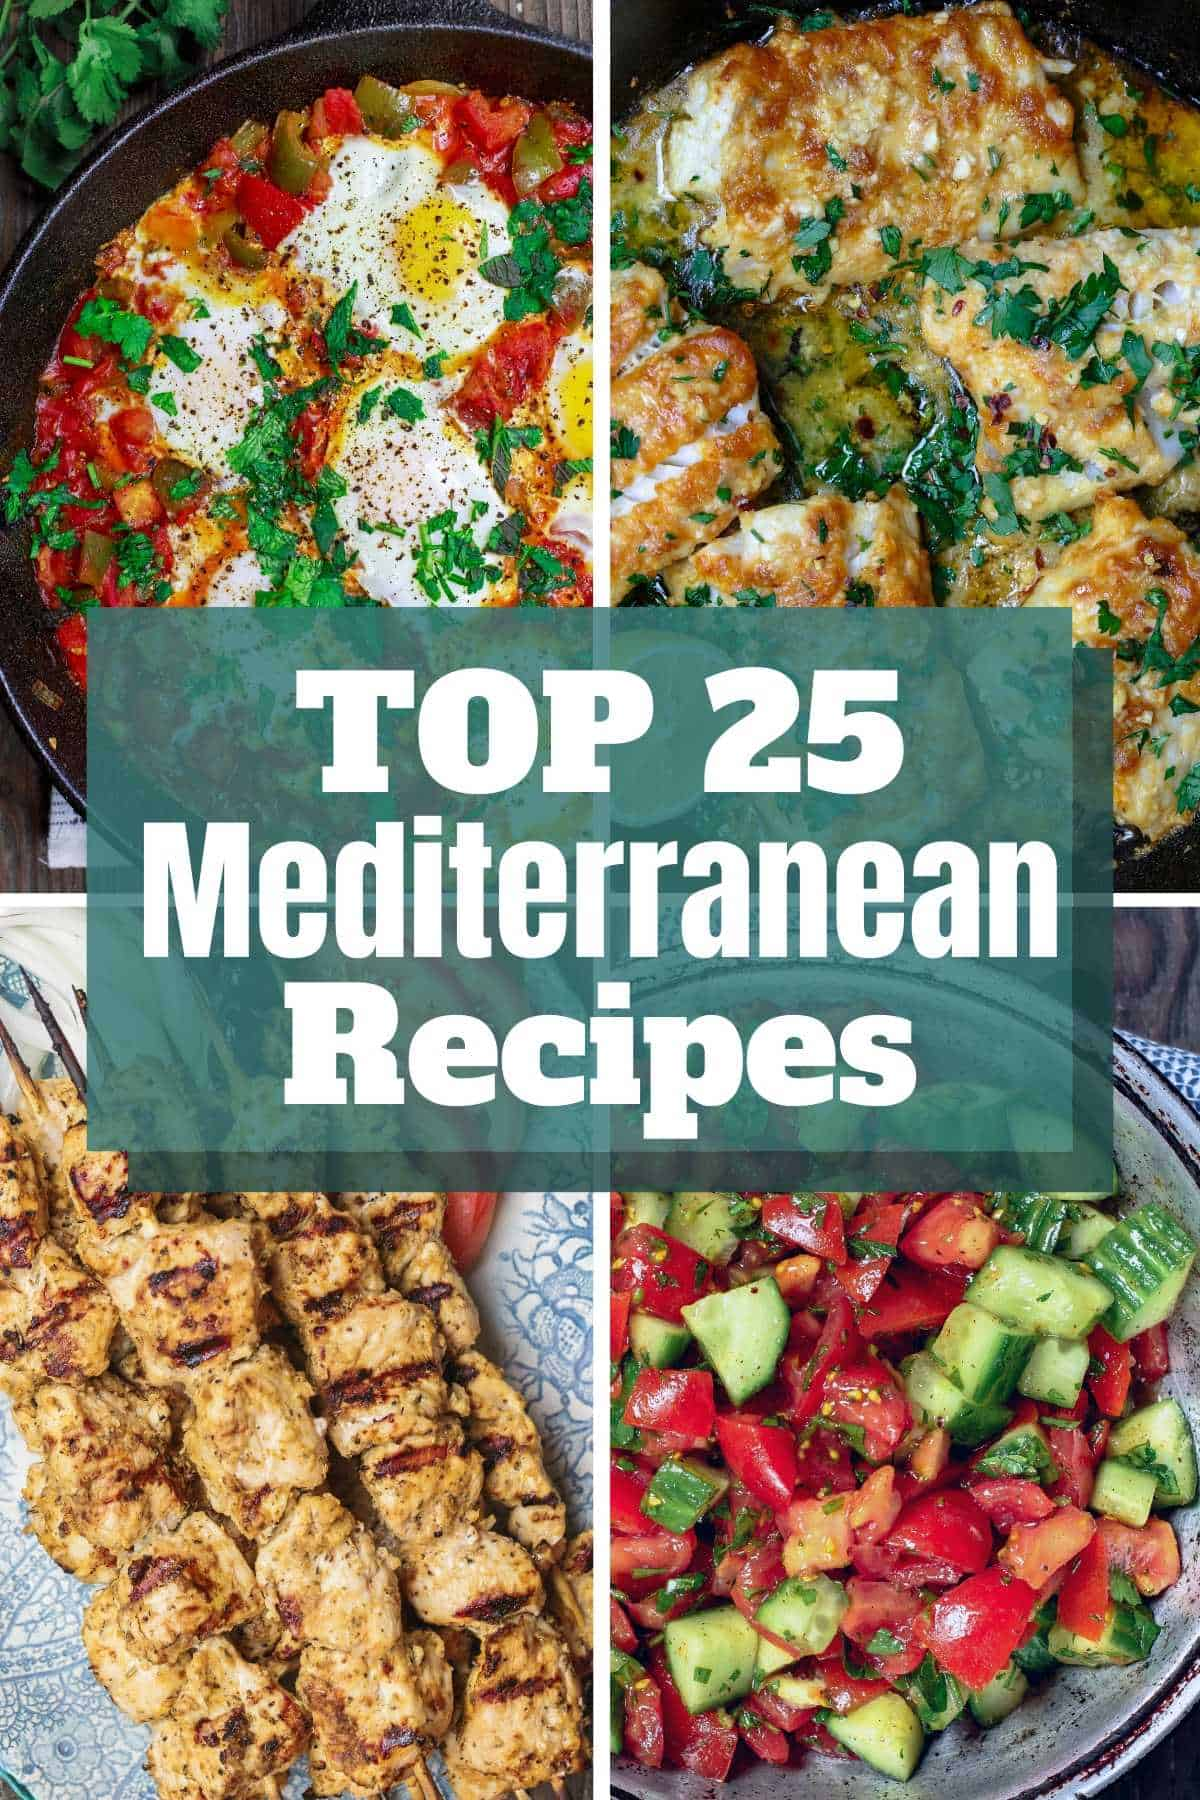 BEST Mediterranean Recipes! Top 18 Mediterranean recipes and Mediterranean diet recipes of 2018 from themediterraneandish.com